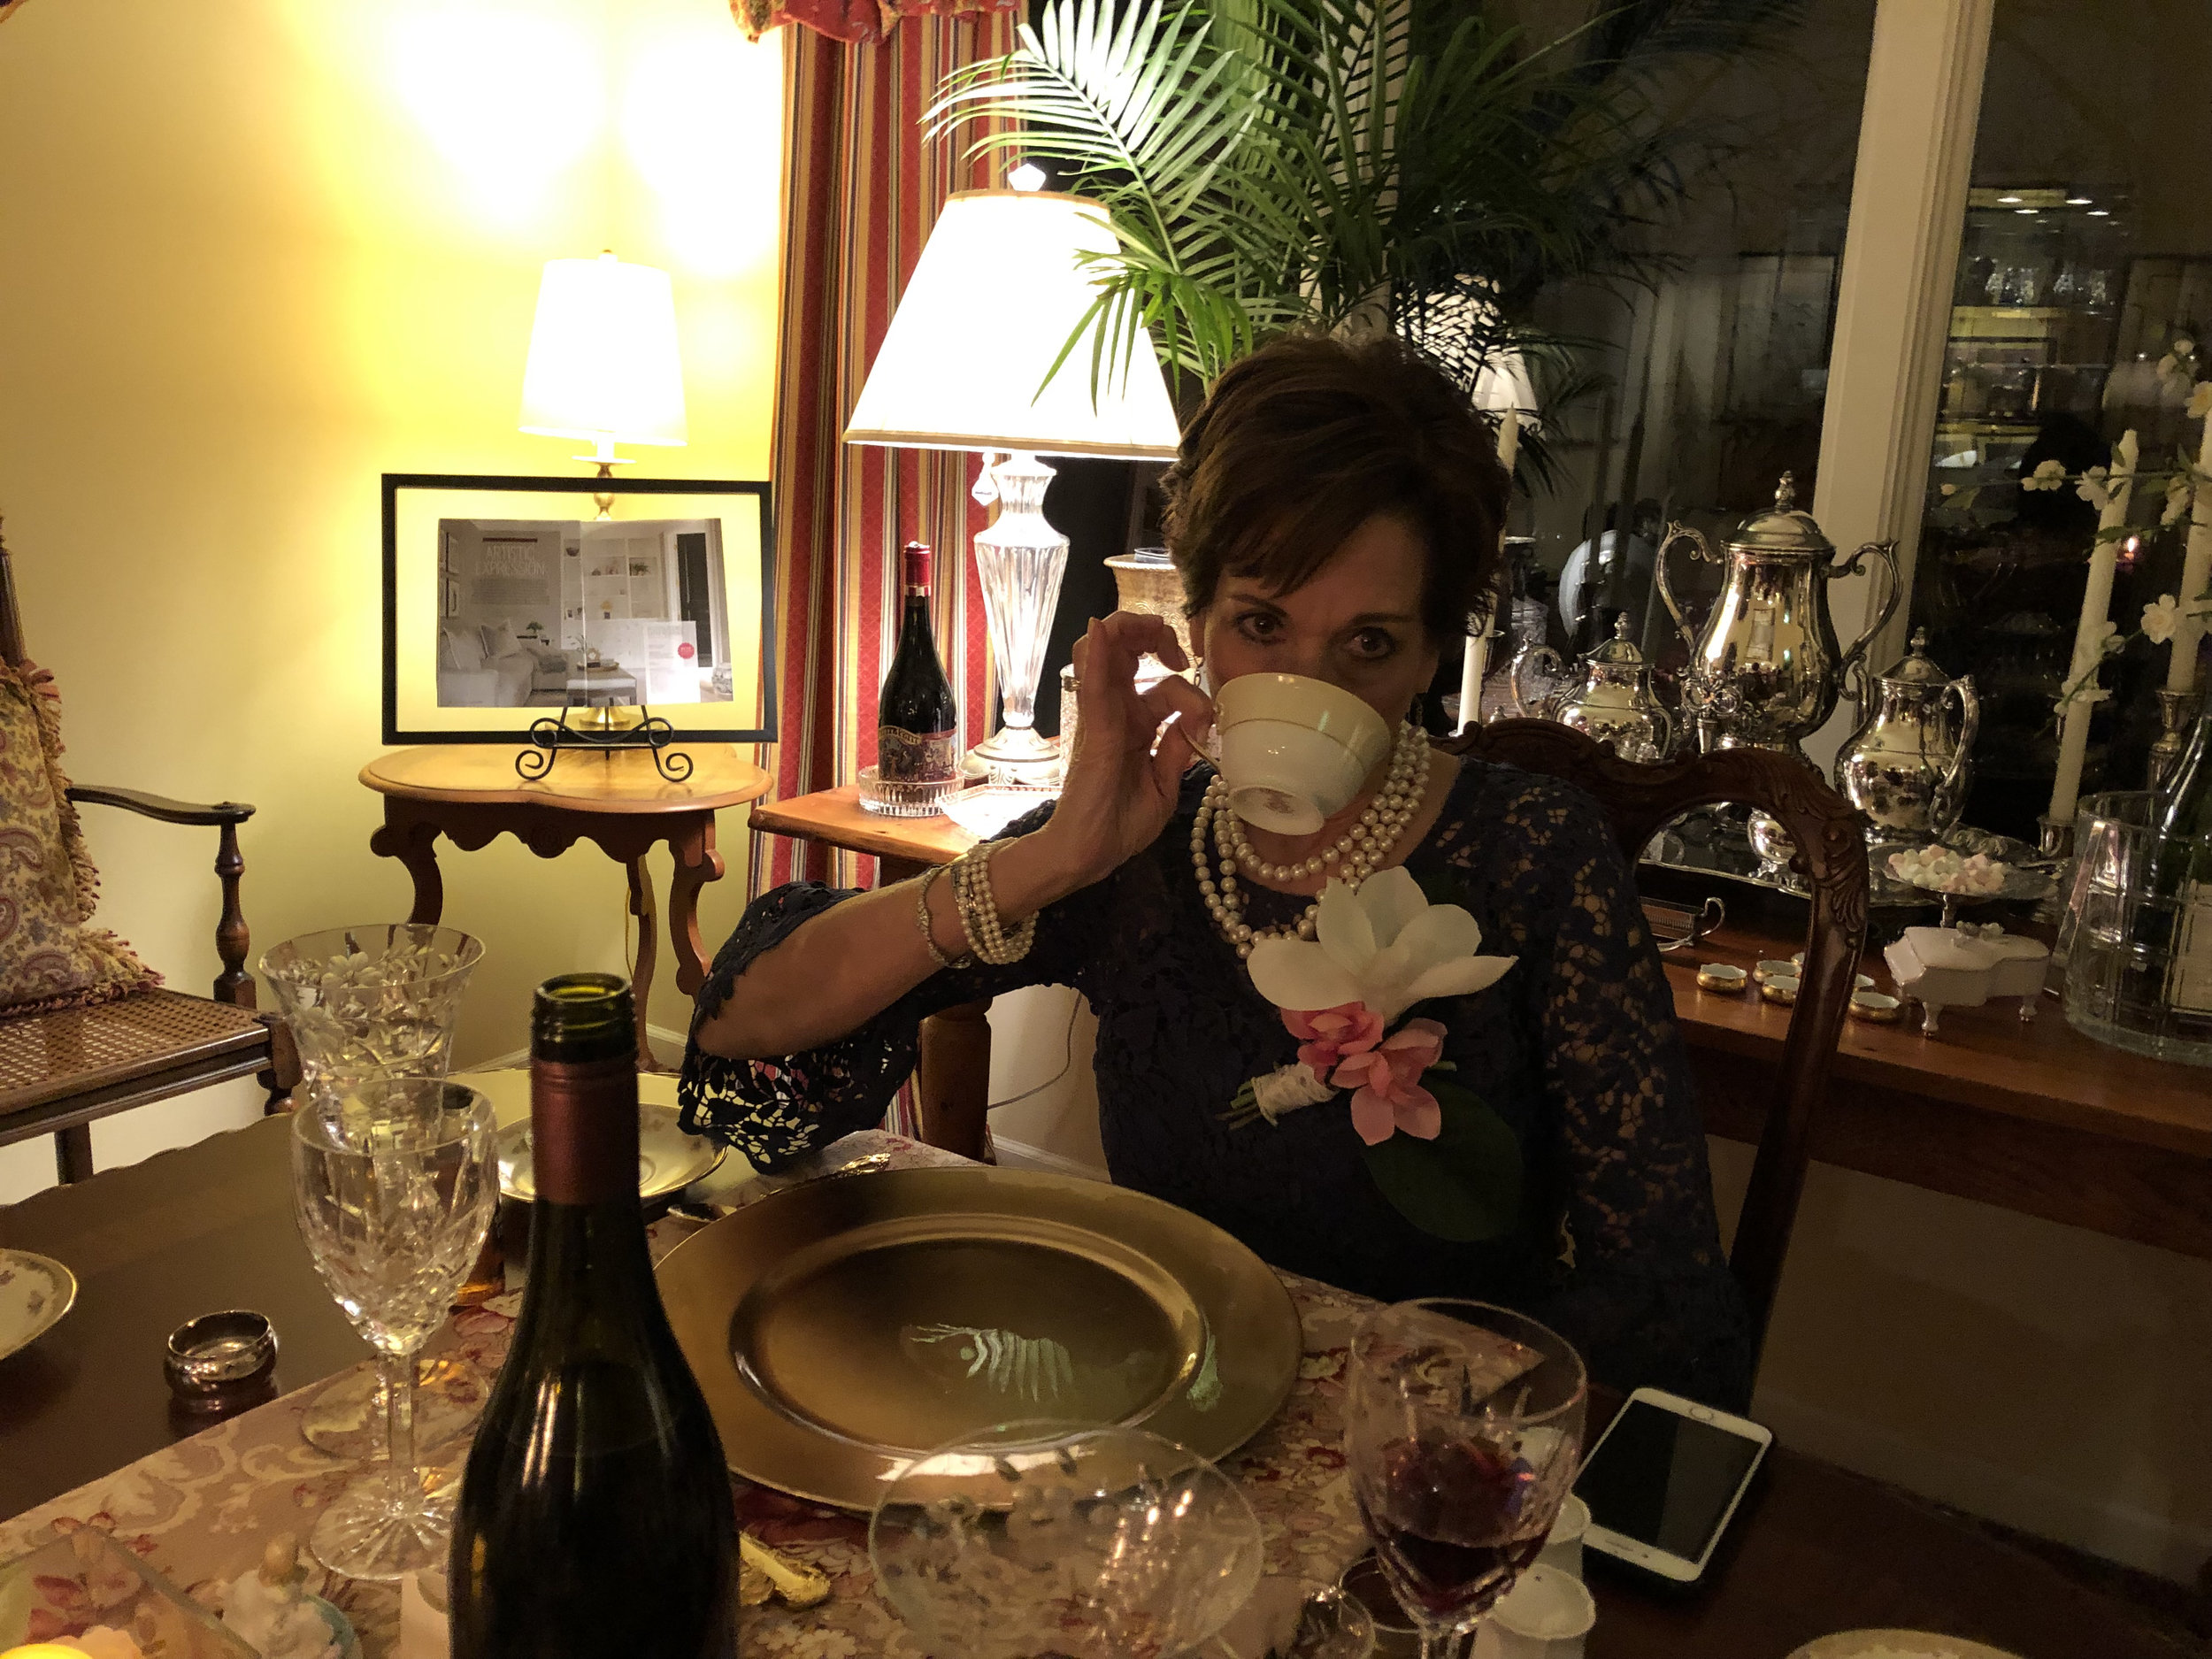 teri_whiskeyinateacup_W3BookClub_spiritedtable_photo37.jpg